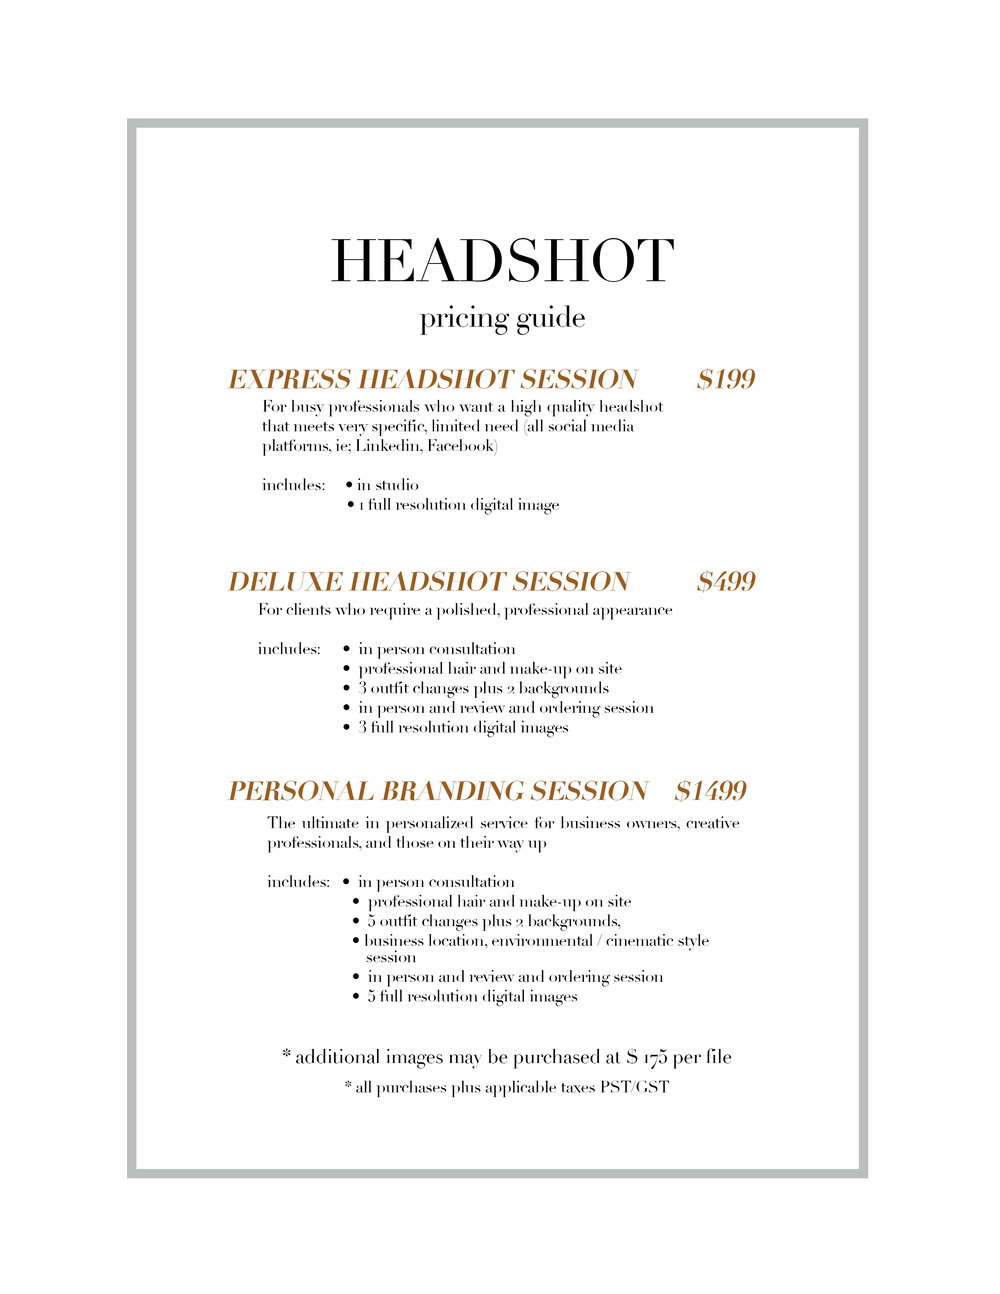 HEADSHOT PRICING GUIDE.jpg